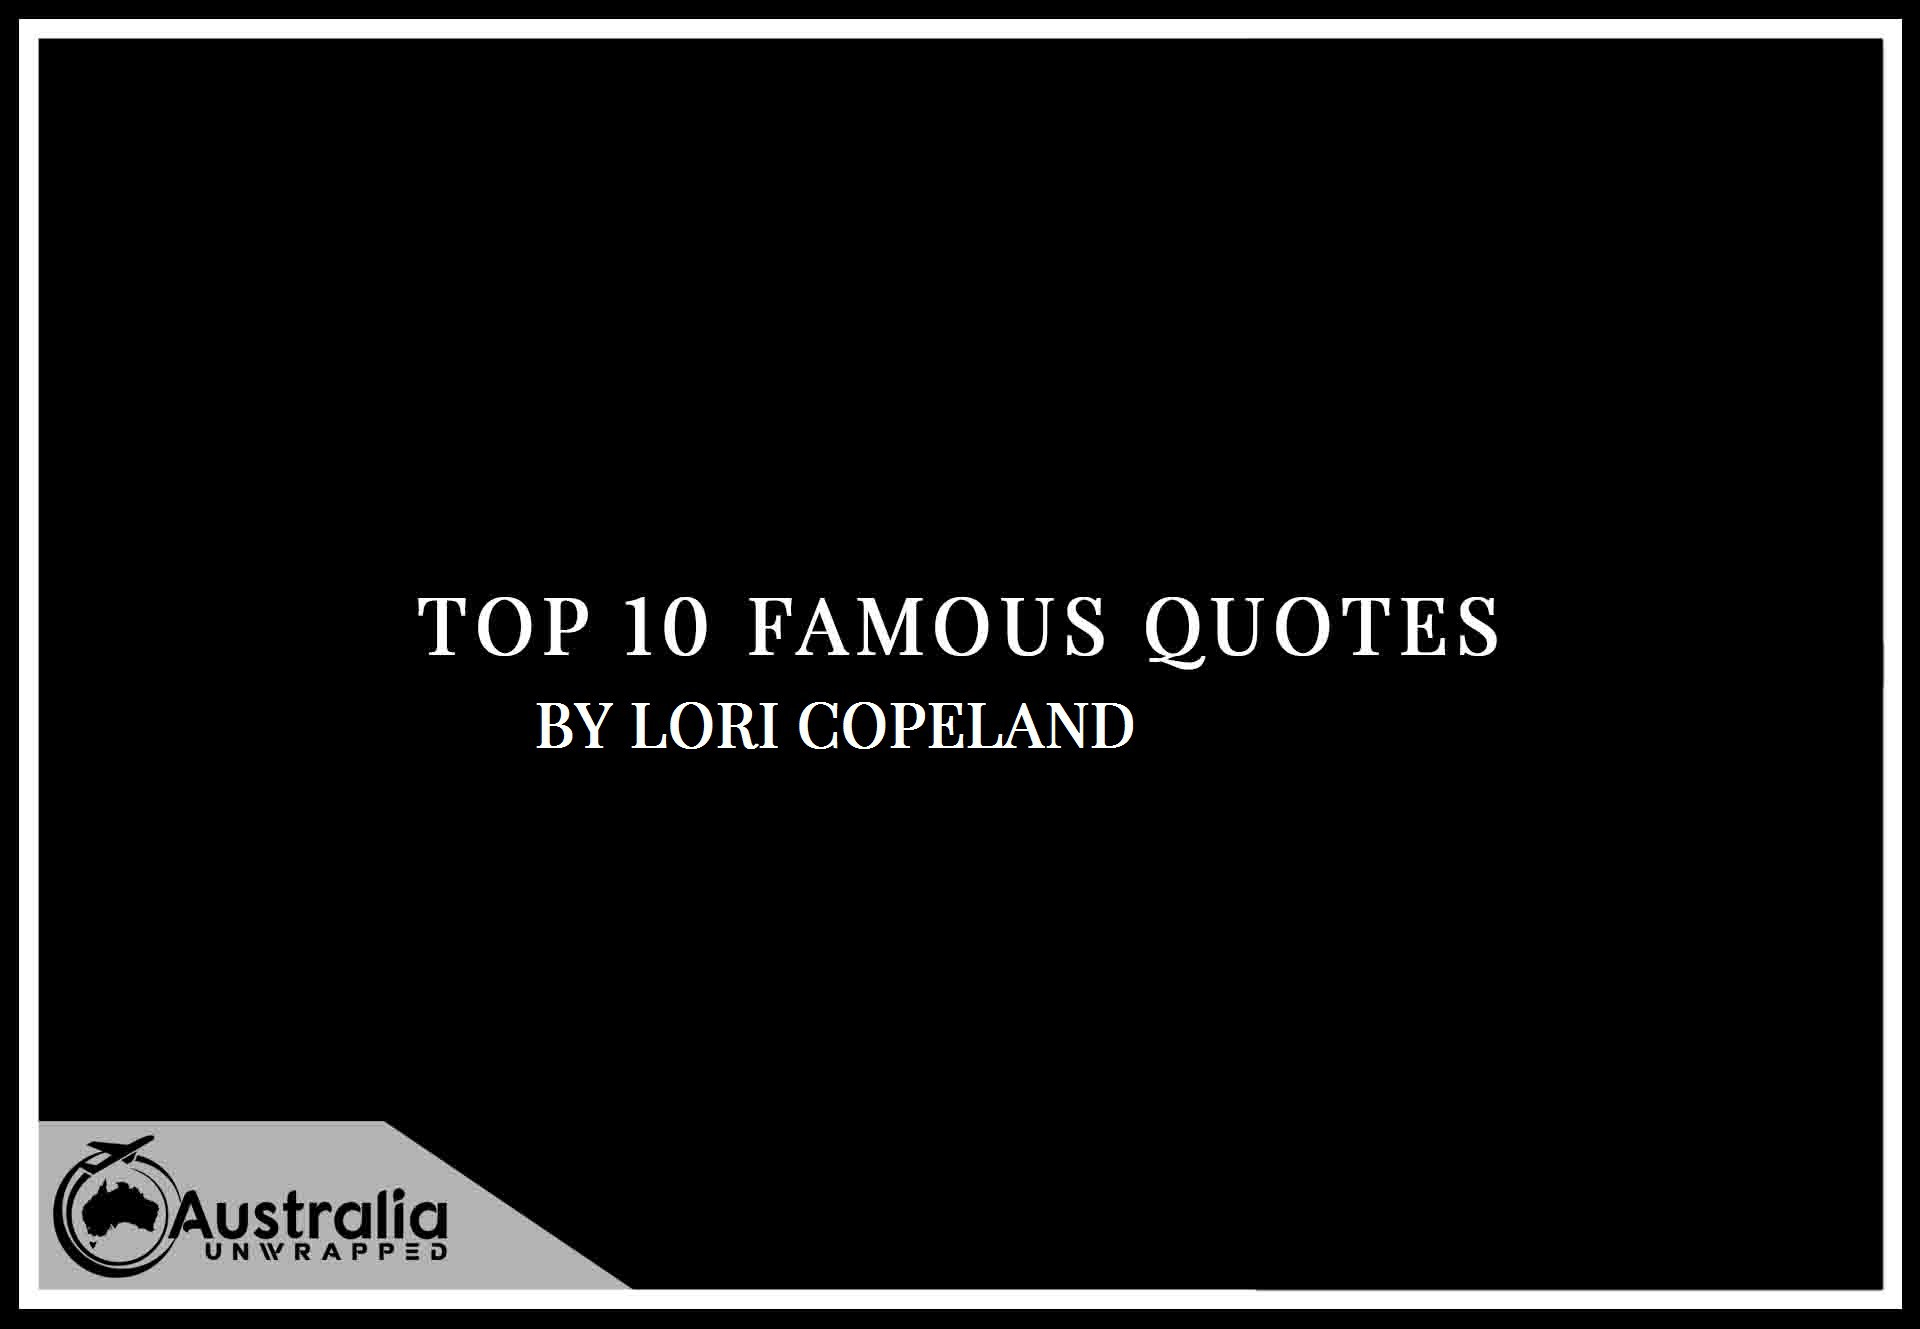 Lori Copeland's Top 10 Popular and Famous Quotes